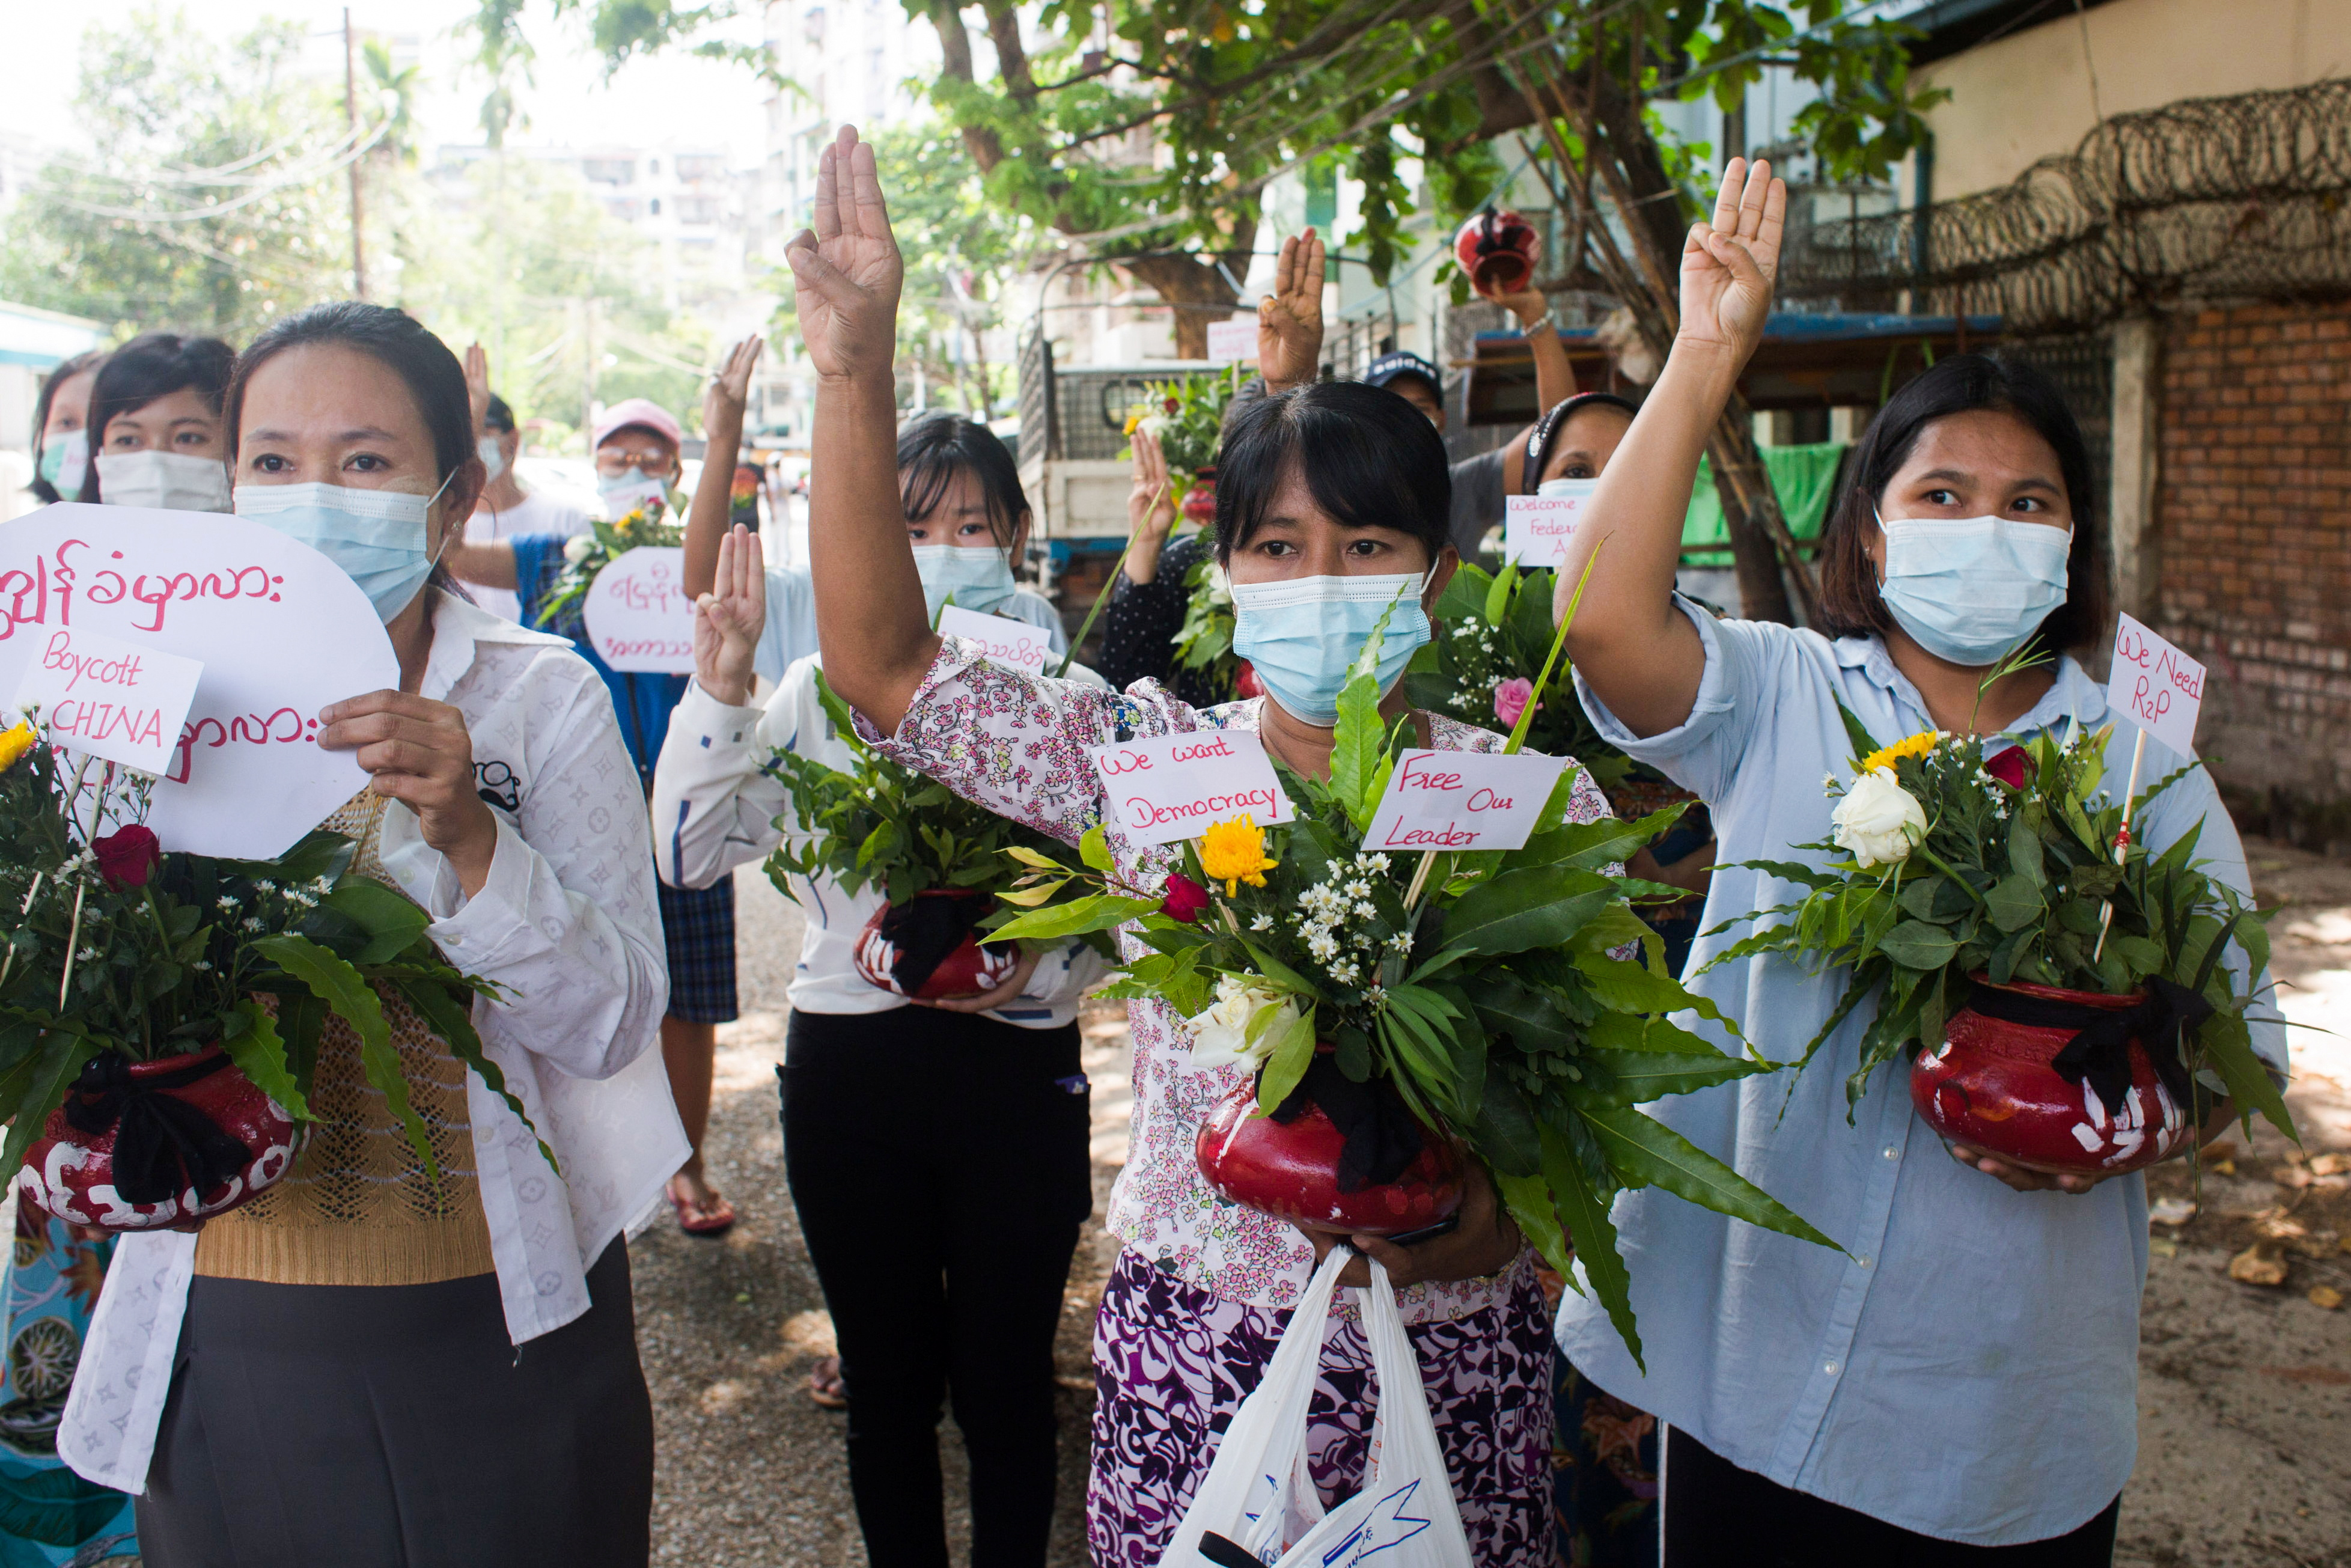 Women carry pots with flowers as they take part in a protest against the military coup in Yangon, Myanmar April 13, 2021. REUTERS/Stringer